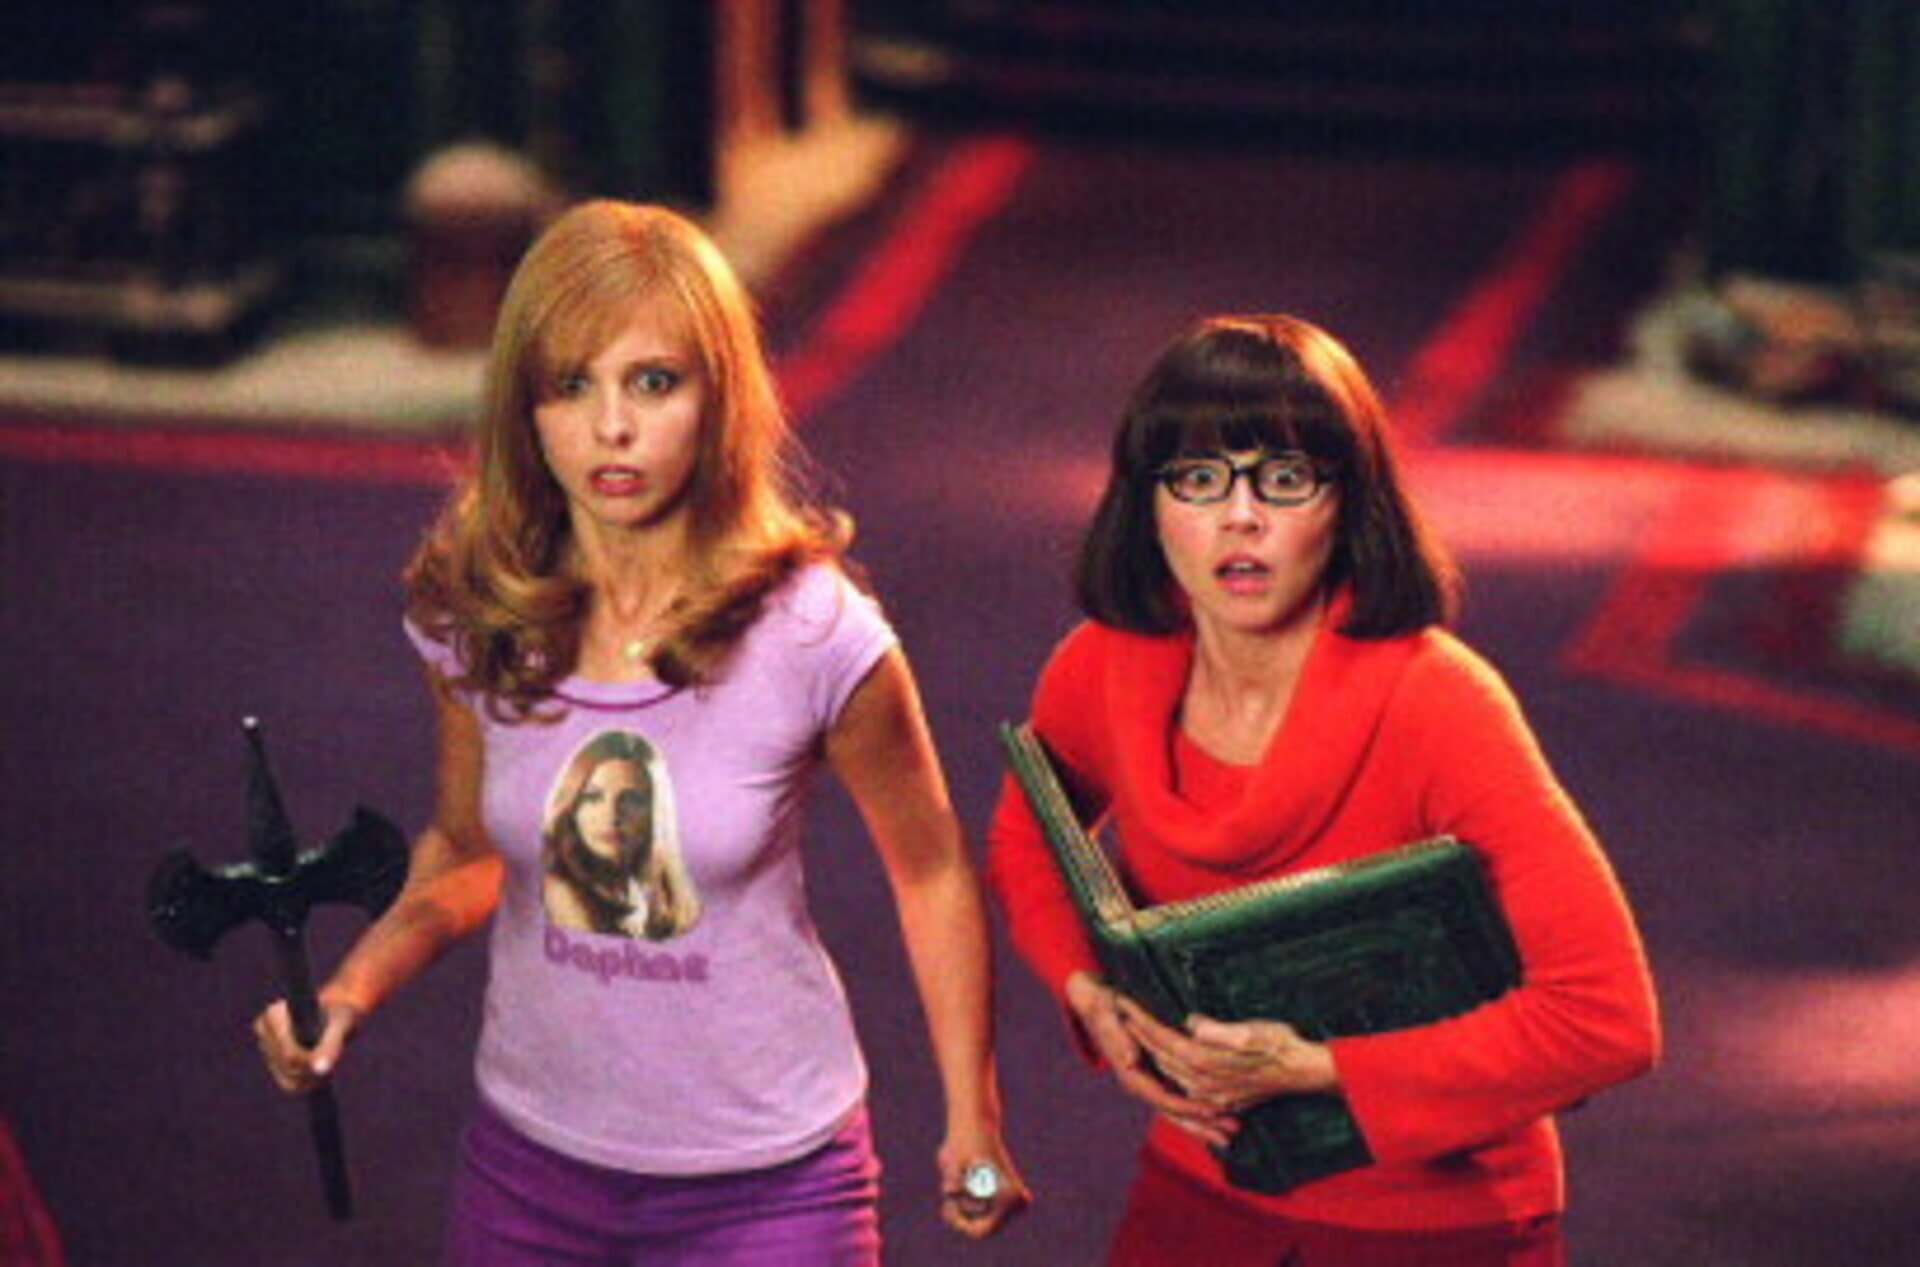 Scooby-doo 2: Monsters Unleashed - Image 31